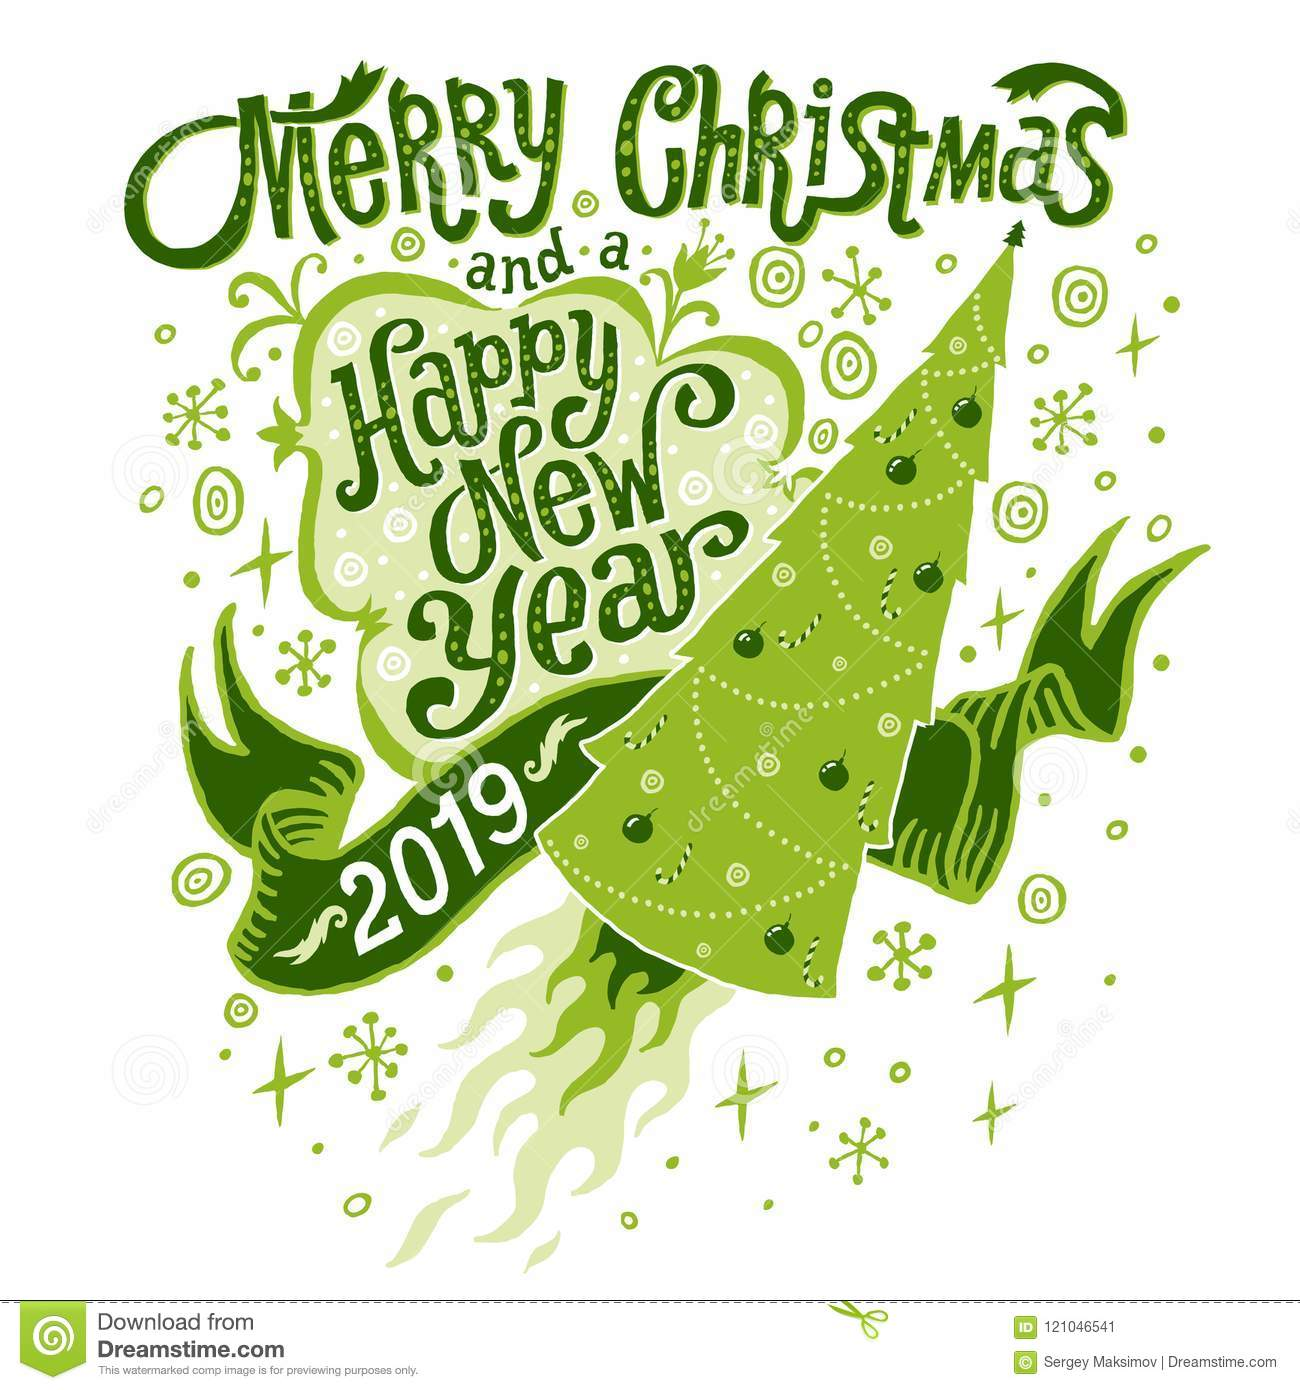 Christmas And New Year Greetings 2019 Merry Christmas And Happy New Year 2019 Greeting Card Stock Vector